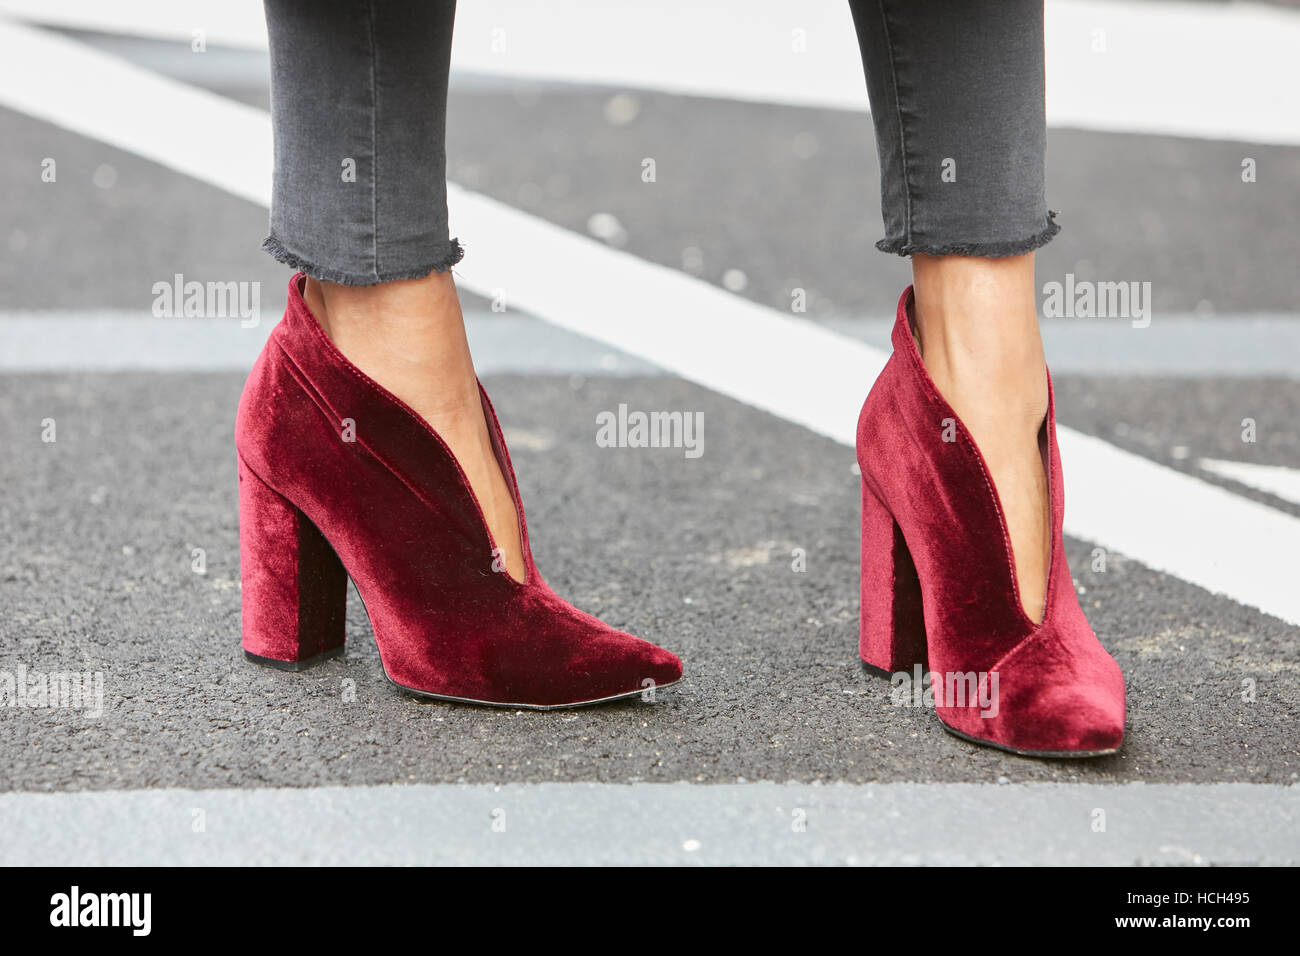 c2e6fb82291 Woman with red velvet high heel shoes before Giorgio Armani fashion show